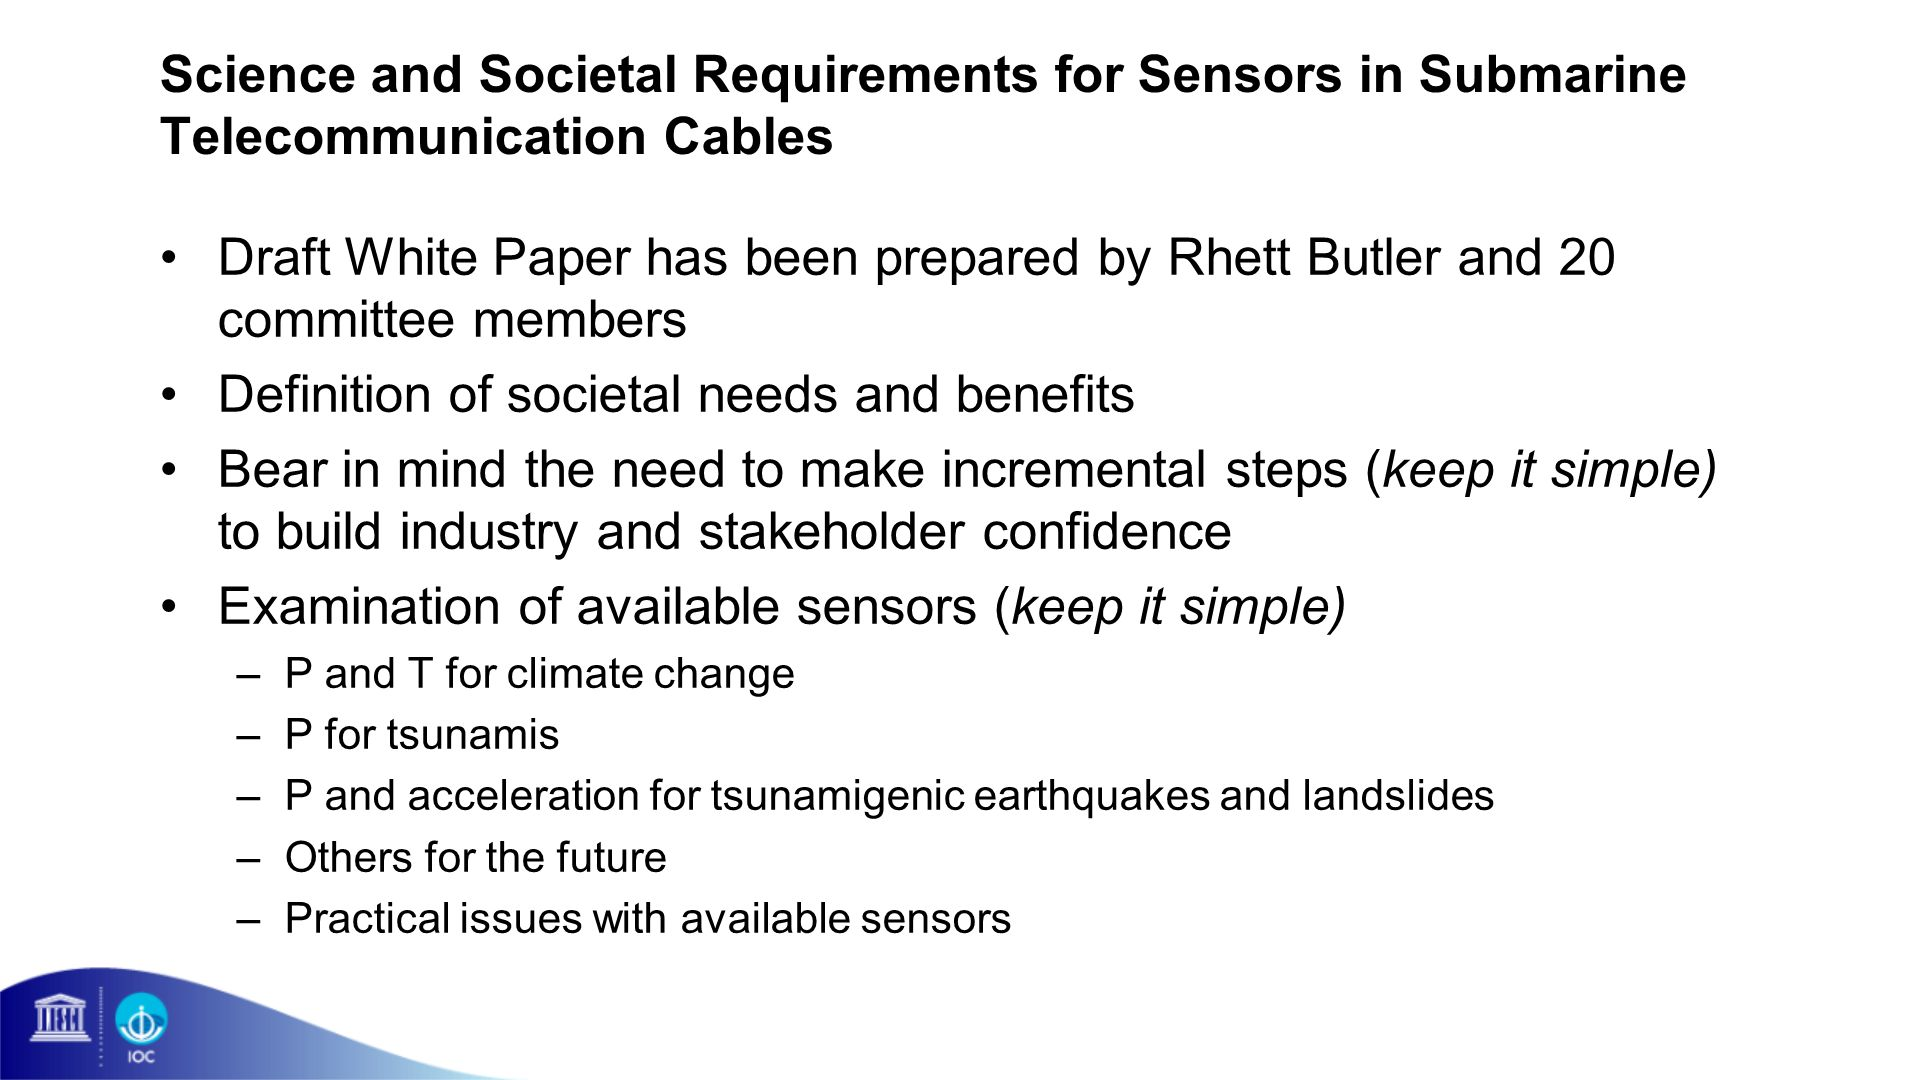 Science and Societal Requirements for Sensors in Submarine Telecommunication Cables Draft White Paper has been prepared by Rhett Butler and 20 committee members Definition of societal needs and benefits Bear in mind the need to make incremental steps (keep it simple) to build industry and stakeholder confidence Examination of available sensors (keep it simple) –P and T for climate change –P for tsunamis –P and acceleration for tsunamigenic earthquakes and landslides –Others for the future –Practical issues with available sensors